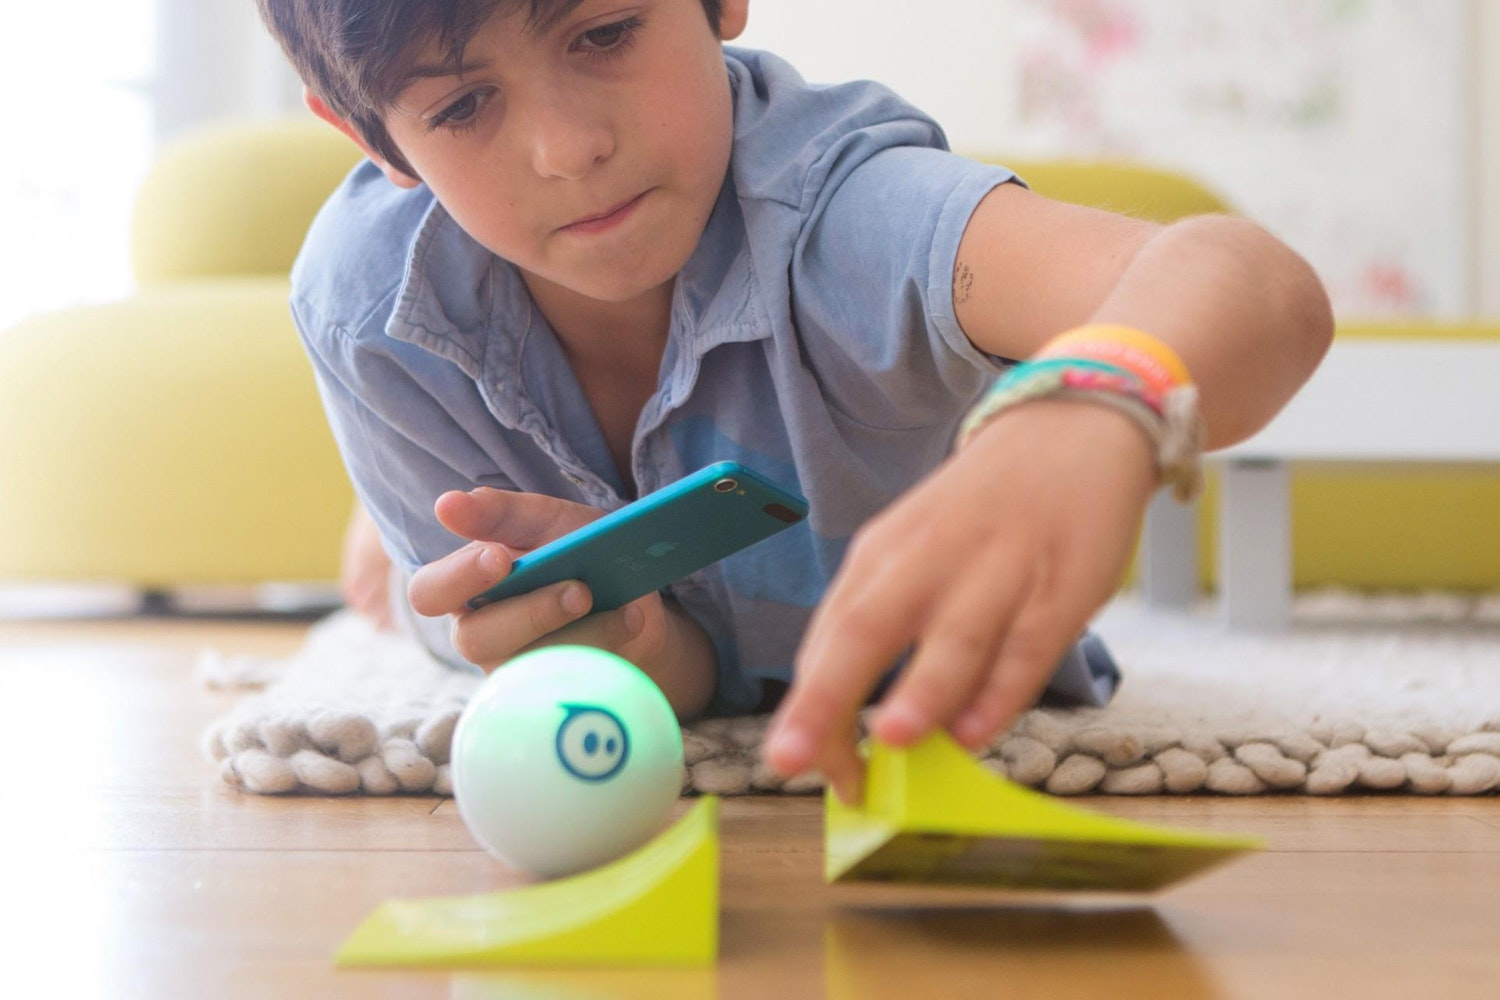 Sphero 2.0 Robotic Ball